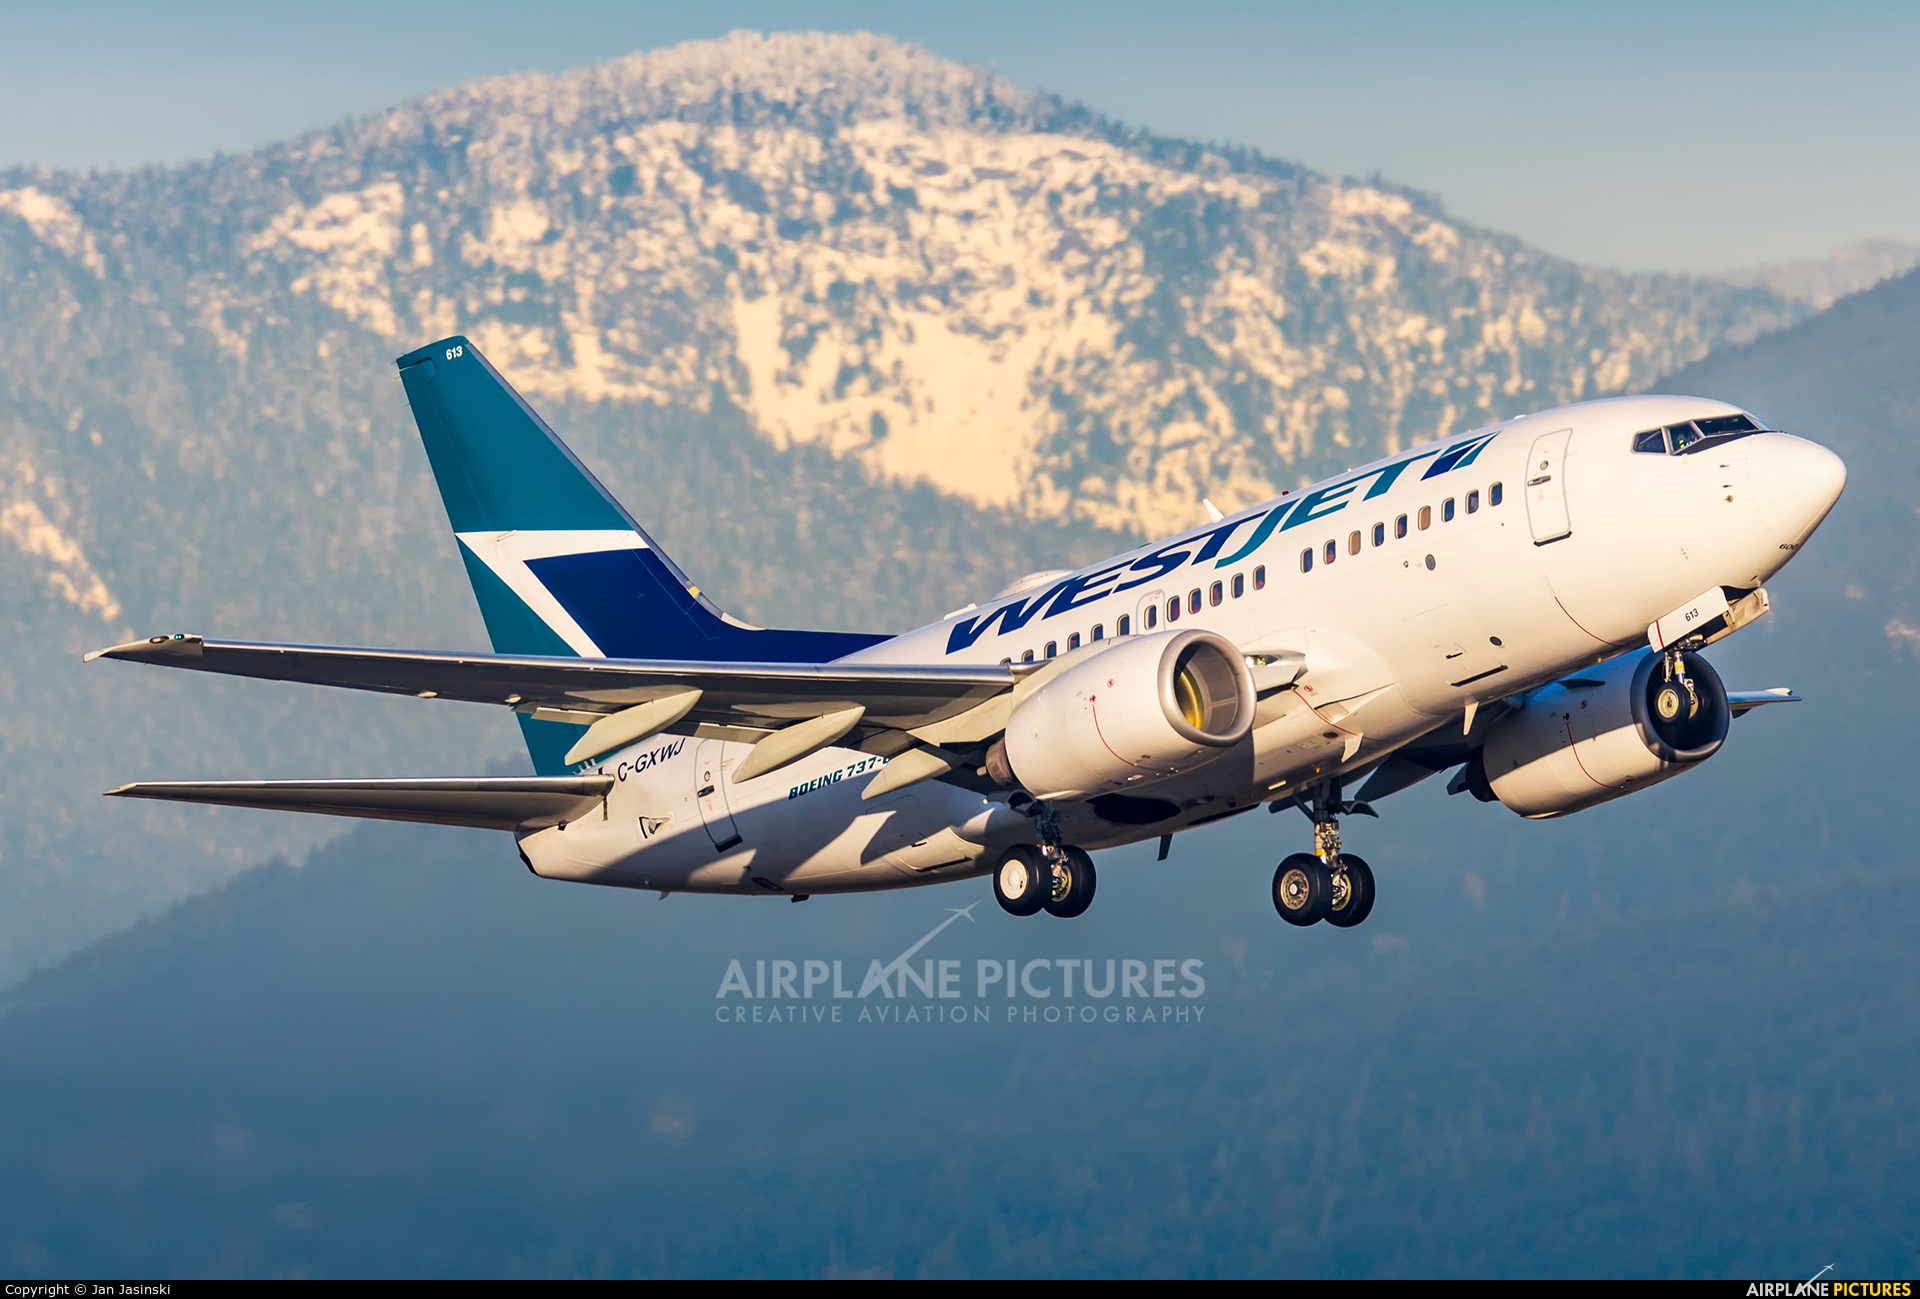 WestJet Airlines C-GXWJ aircraft at Vancouver Intl, BC